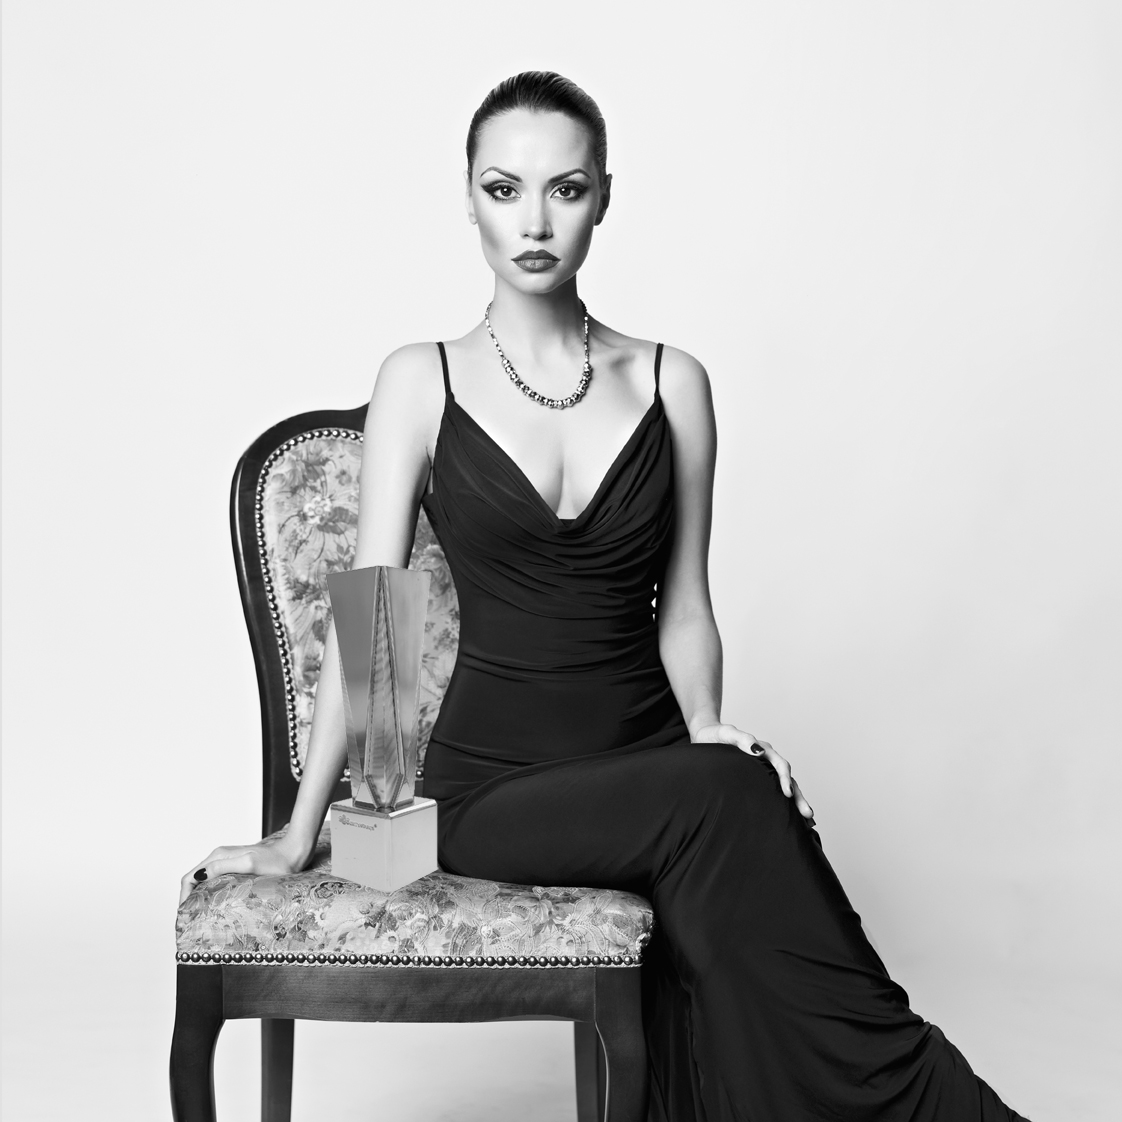 Model in black evening gown, sitting on a damask side chair with the Gatsby Silver Small award from the Exclusives Line of trophies.